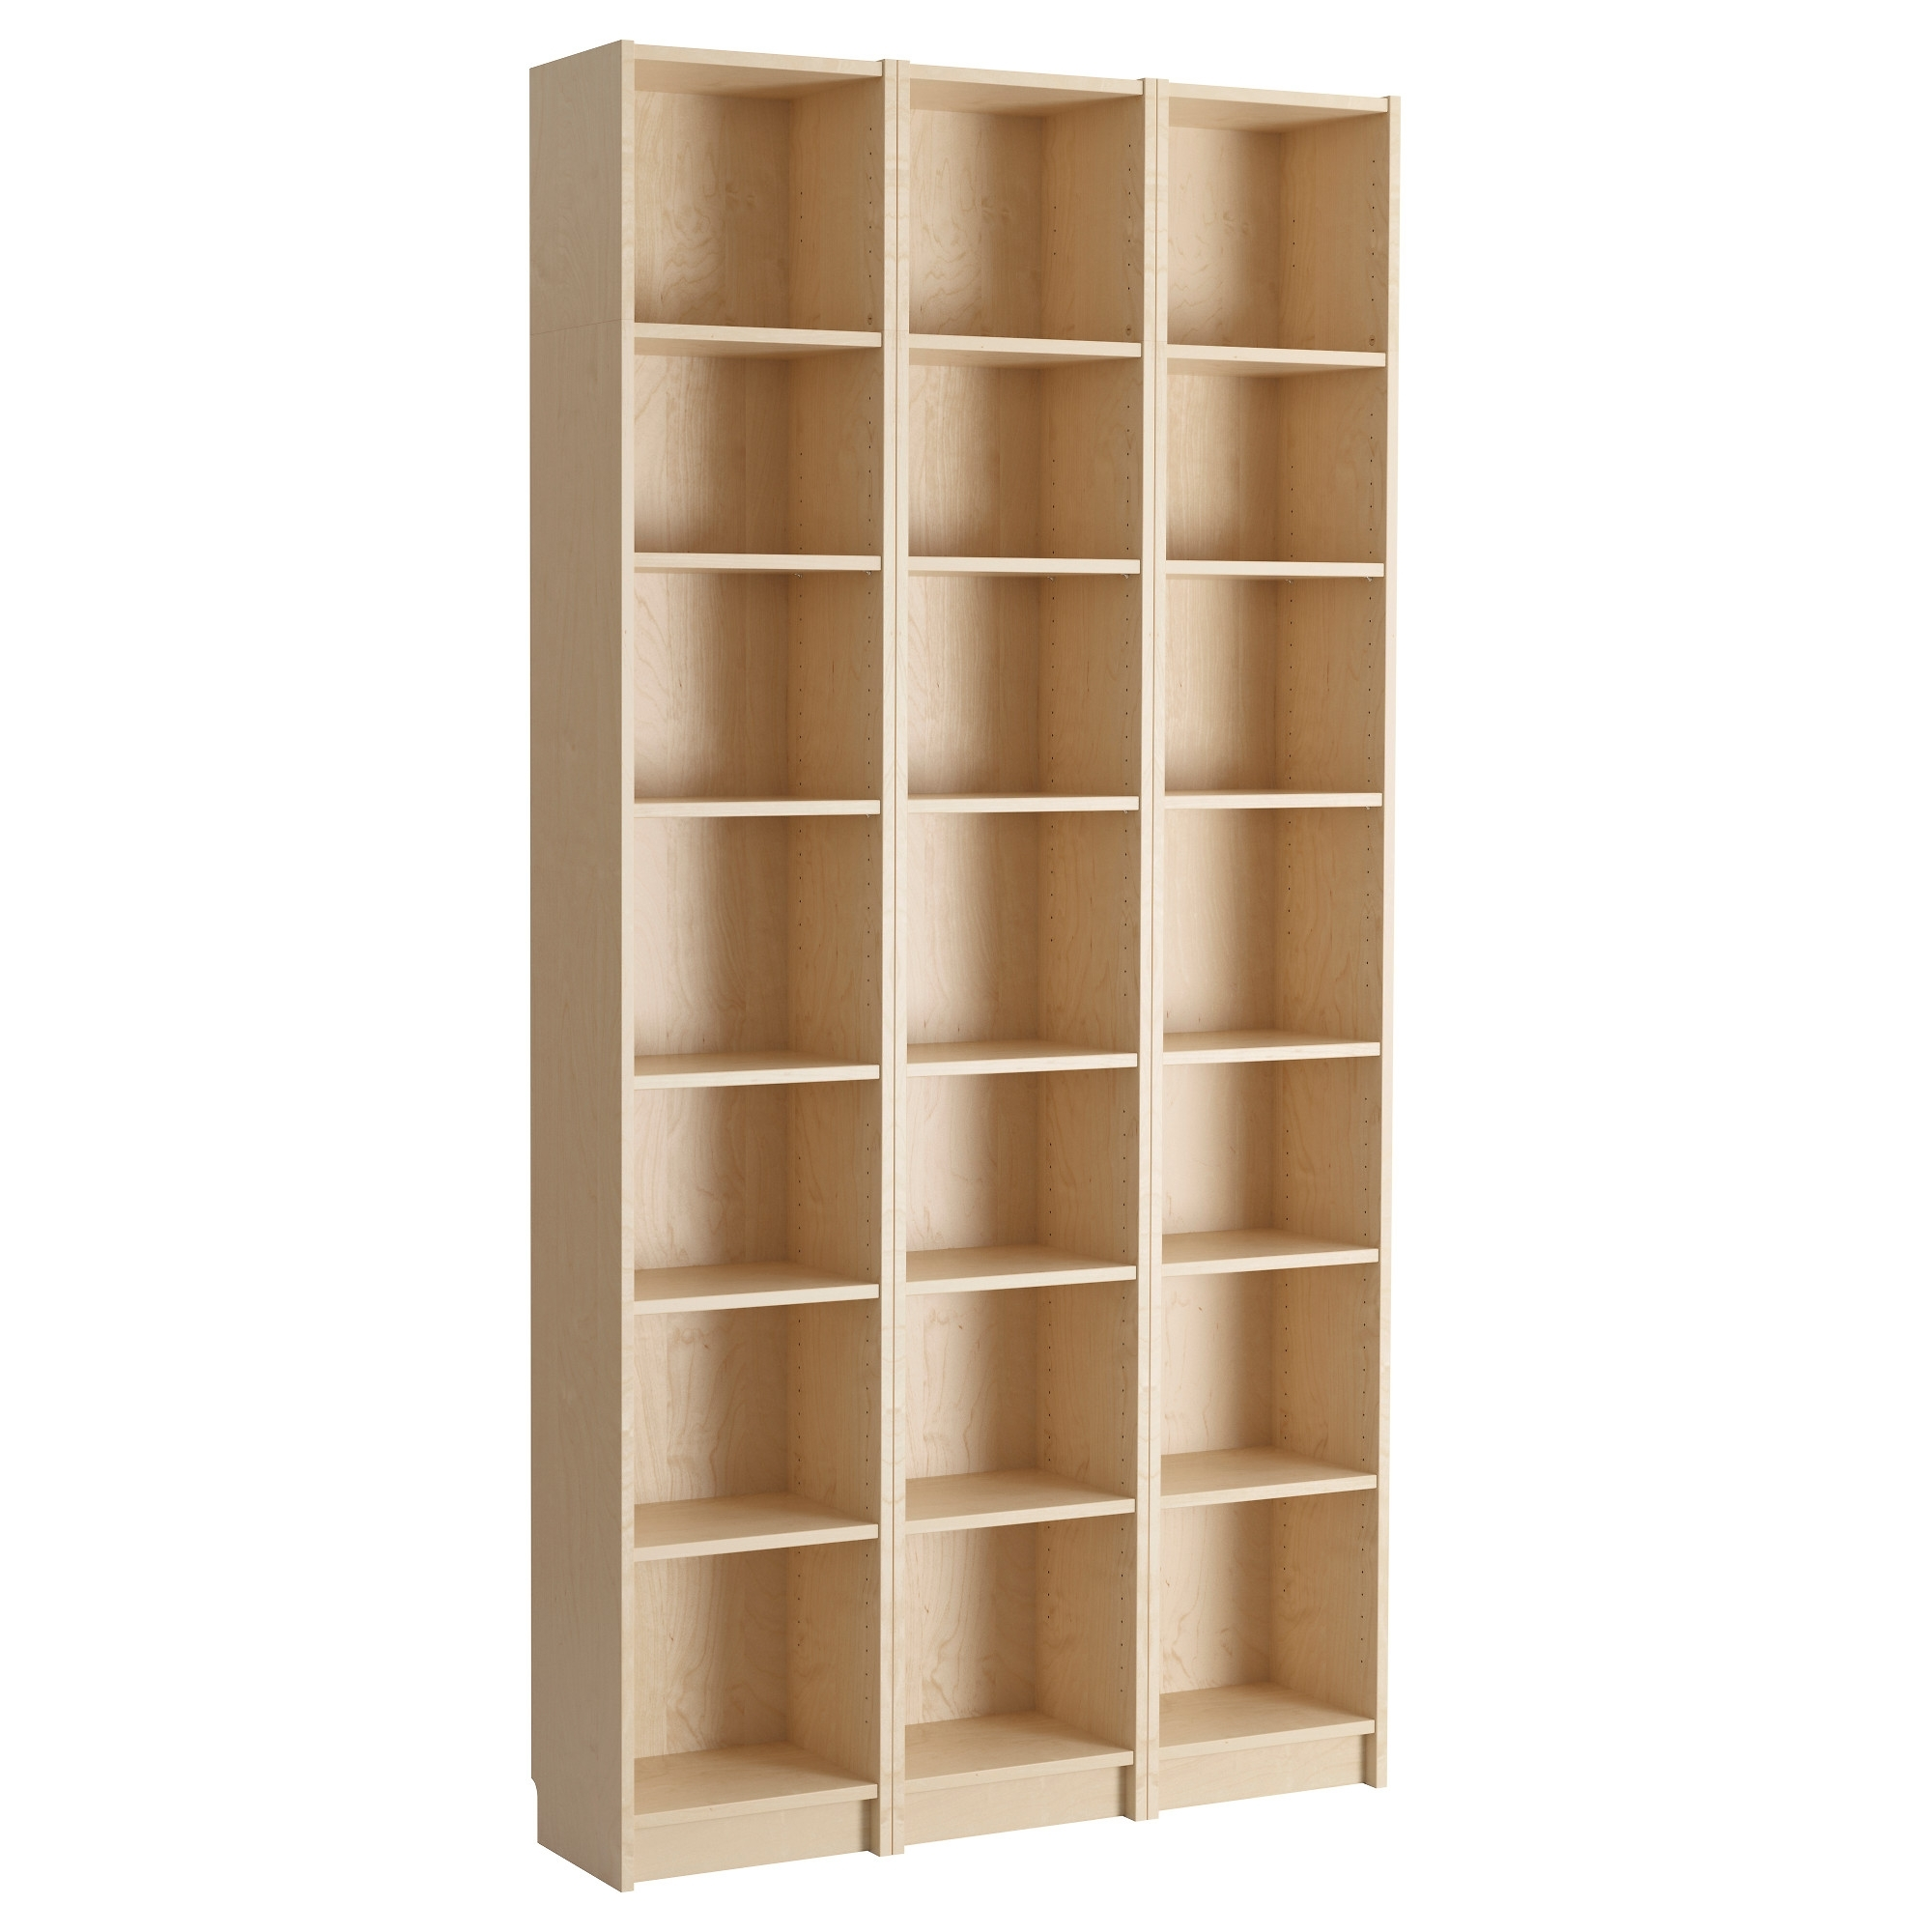 Well Known Ikea Billy Bookcases Pertaining To Billy Bookcase – Birch Veneer – Ikea (View 15 of 15)